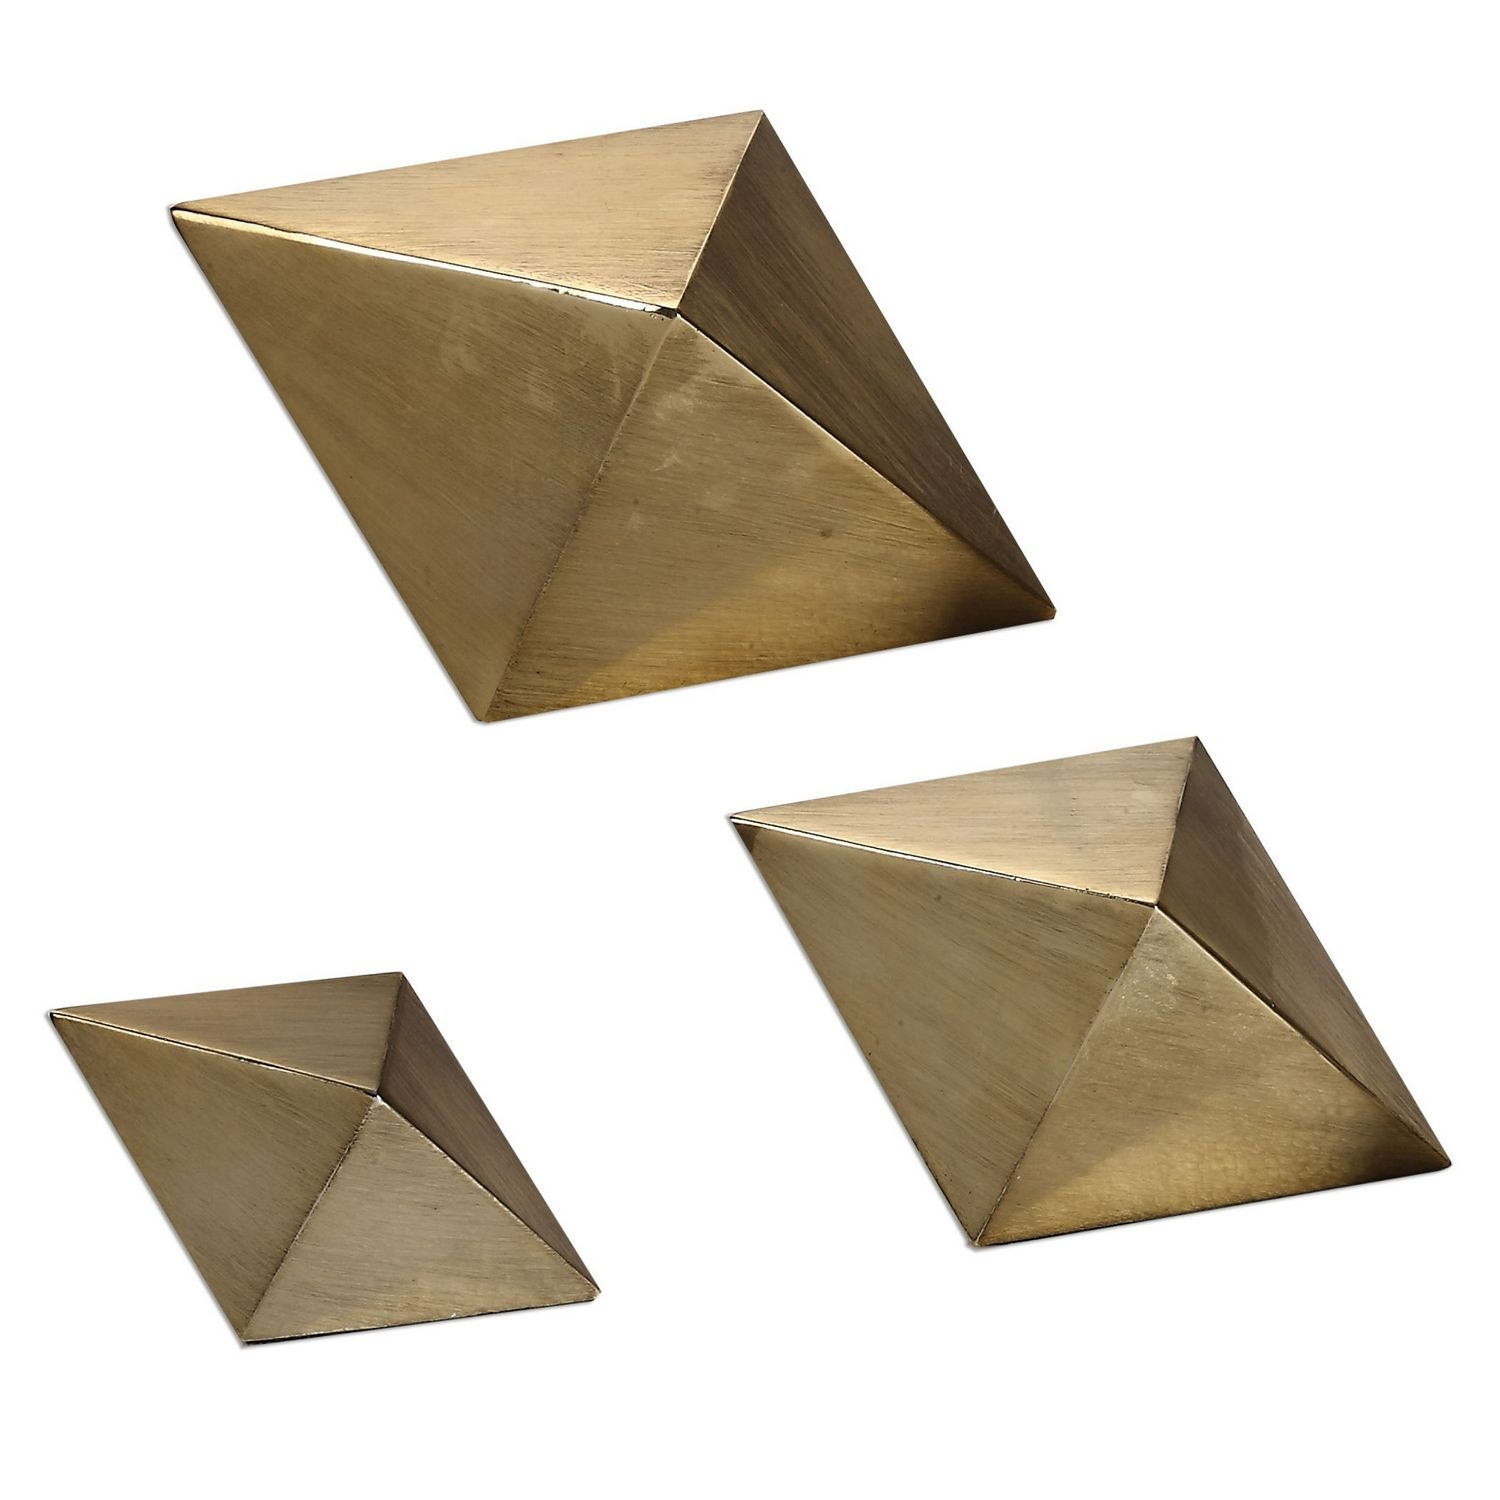 Uttermost Rhombus Accents - Set of 3 - Champagne